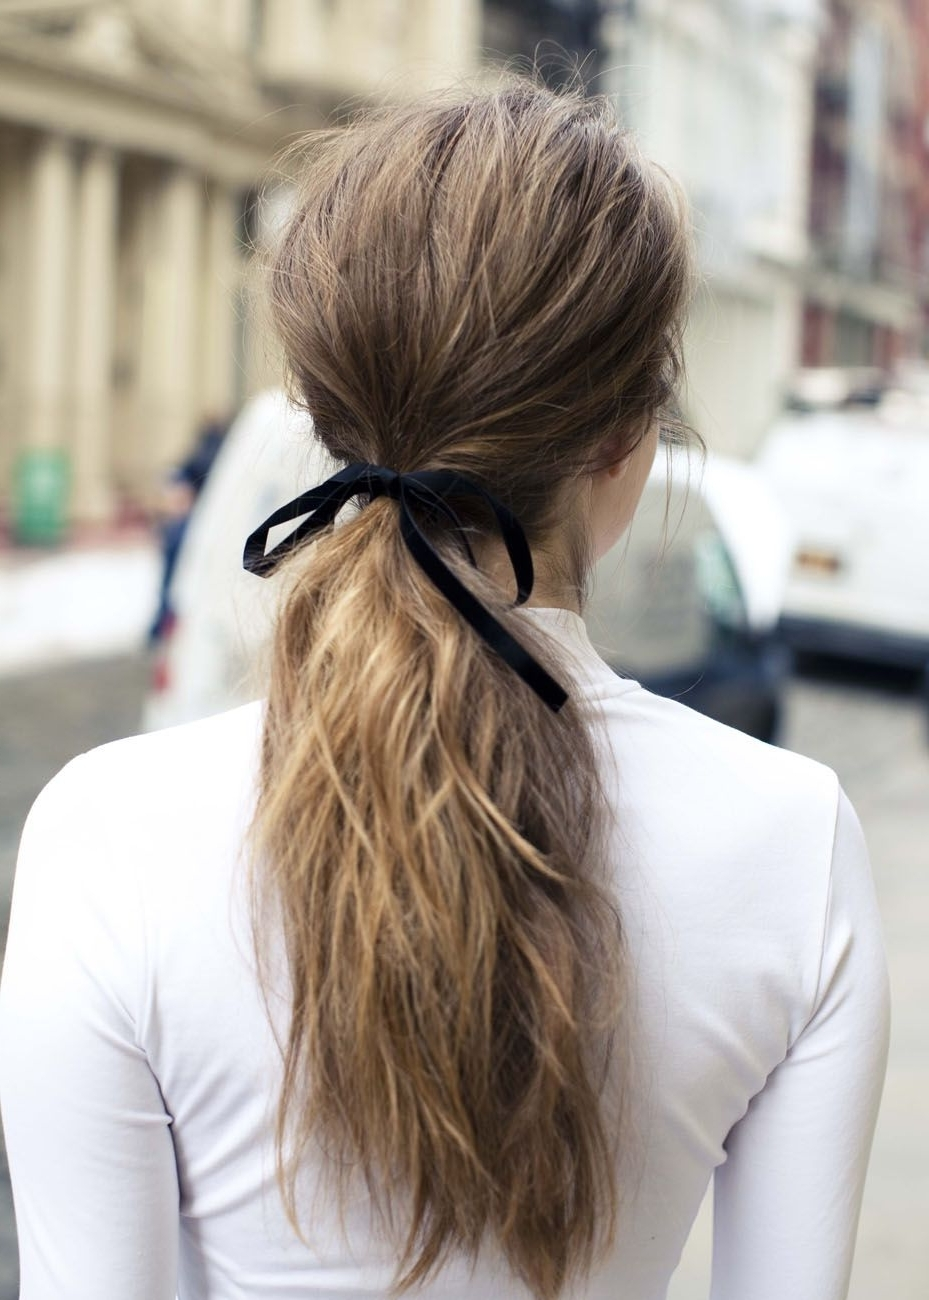 Most Recently Released Low Twisted Pony Hairstyles For Ombre Hair Within How To Make Even The Simplest Ponytail Pretty (View 15 of 20)